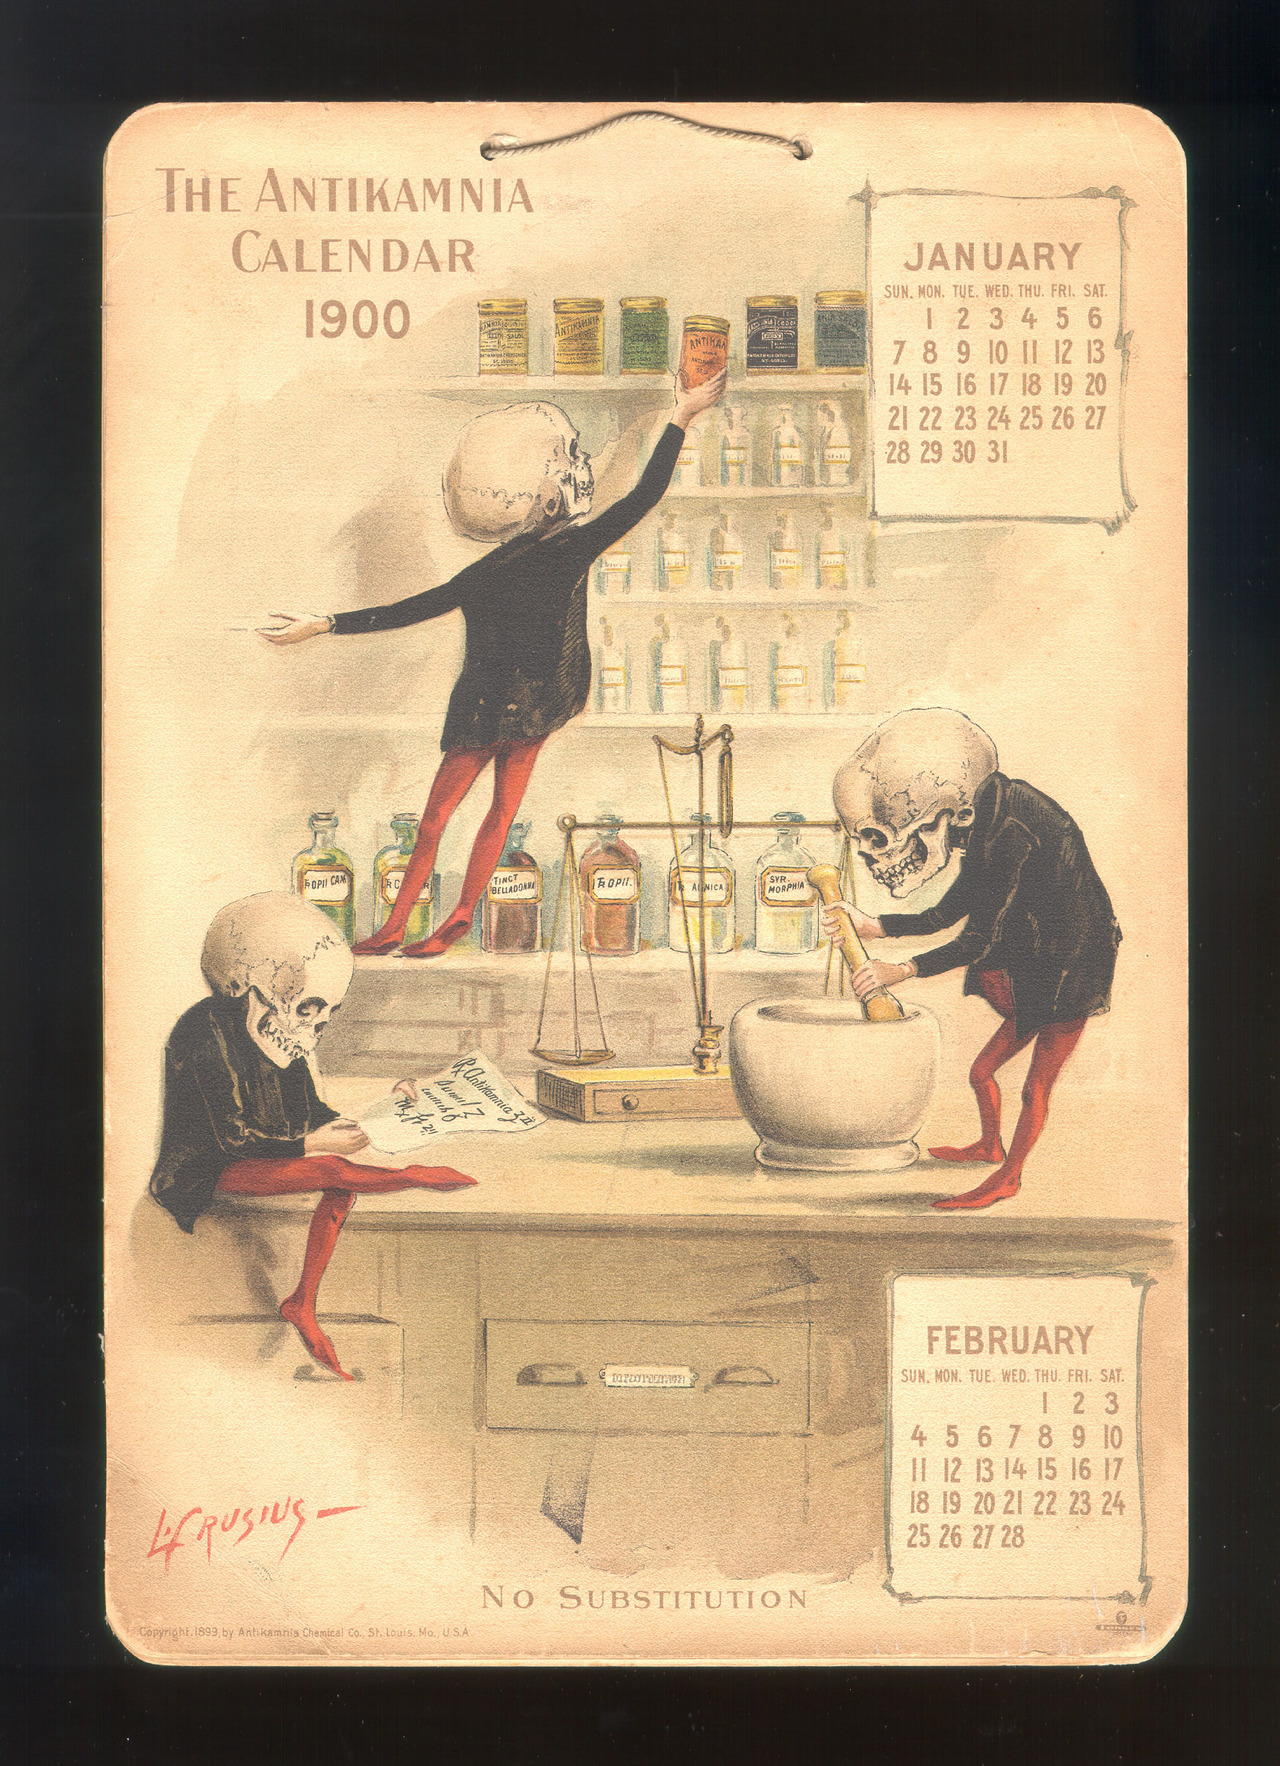 "Antikamnia Calendars and the Birth of Tylenol These mischievous little skeletons helped lead us to one of today's most successful pain relievers.   The Antikamnia company marketed an analgesic (pain-relieving) powder to pharmacists and druggists of the late 19th and early 20th centuries using these rather morbid calendars. The name of the company actually means ""opposed to pain"". Antikamnia Chemical Company was later shut down after failing to disclose the active ingredient of their pain-relieving products: Acetanilide. Not only was it illegal (as it is now) to fail to label drugs correctly, but acetanilide was known to impair red blood cells' ability to release oxygen to tissues. That's not the kind of drug you want on the market, obviously. But Anitkamnia was an effective pain reliever, even if you'd go blue after taking it. One thing many people don't realize about pharmaceutical chemicals is that they are metabolized and modified by human biochmistry. For many of them, the compound in the pill is useless, and they require breakdown or modification to become active. It wasn't until nearly half a century later that Nobel Prize-winning biochemist Julius Axelrod discovered that the primary metabolic product of acetanlilide is a compound called paracetamol. Of course, you may know paracetamol by its other chemical name, para-acetylaminophenol … or Tylenol. Check out the rest of the Antikamnia calendars at Retronaut."